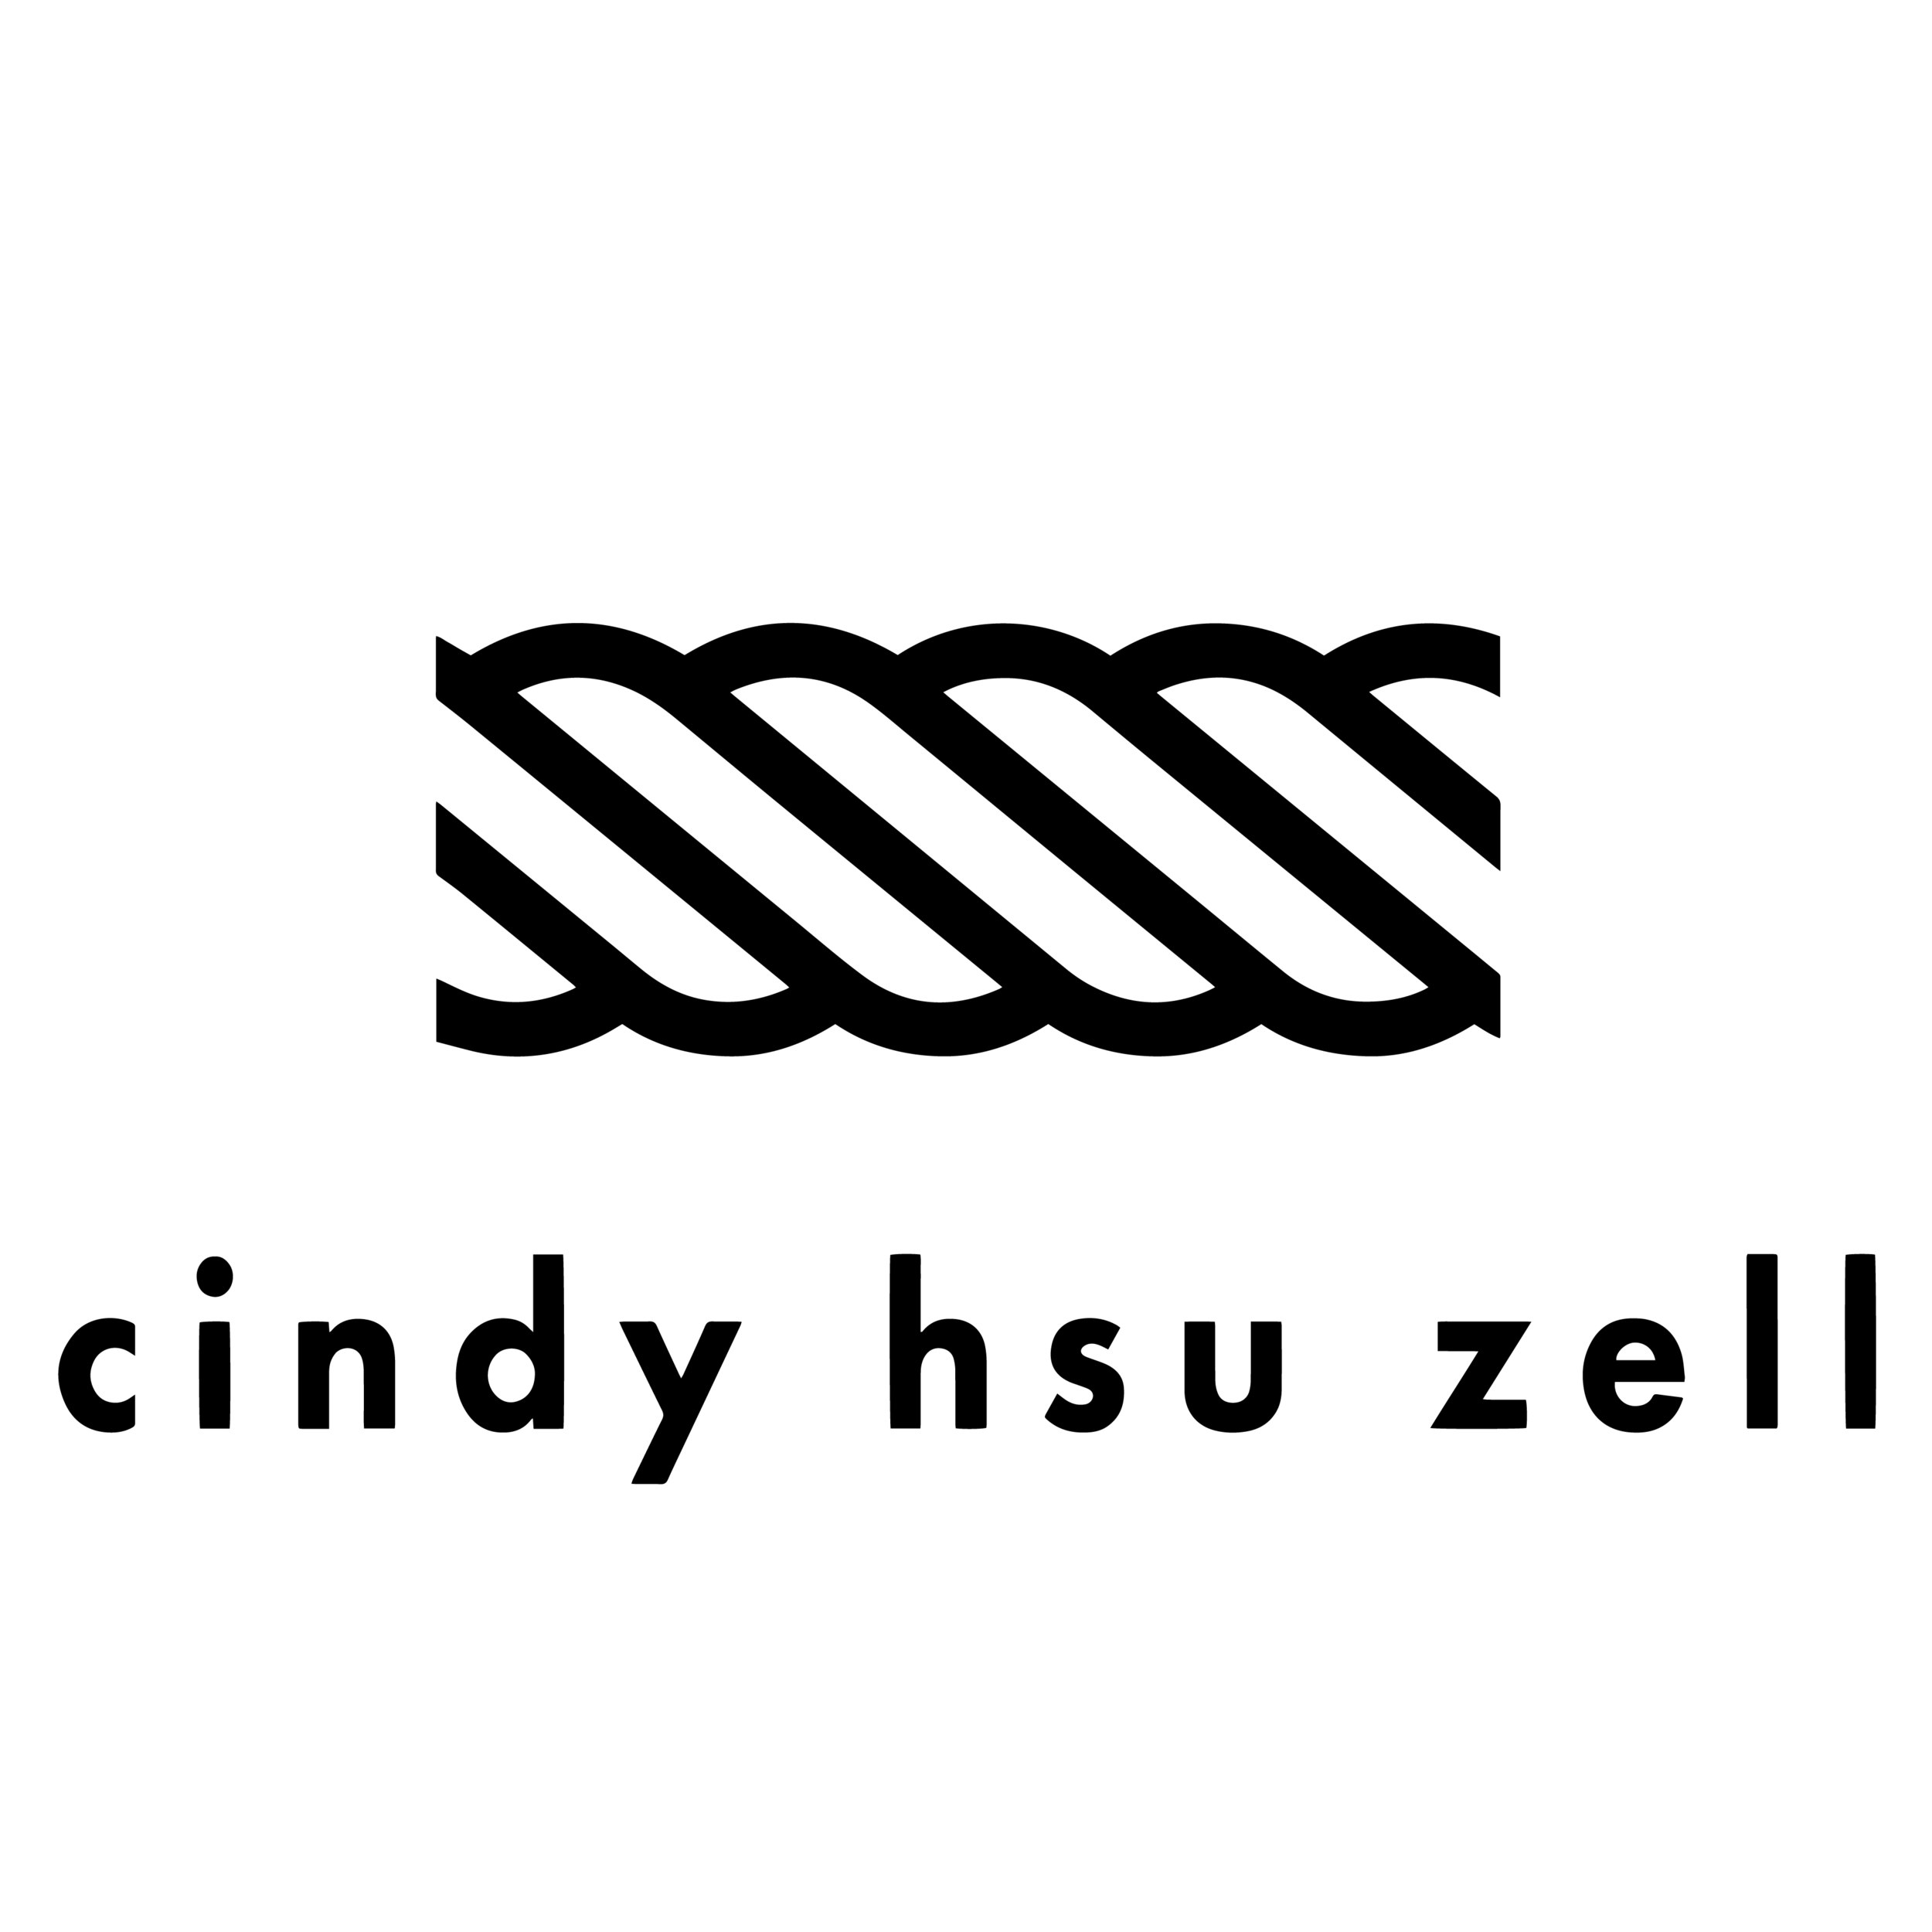 cindyhsuzell_logo.png